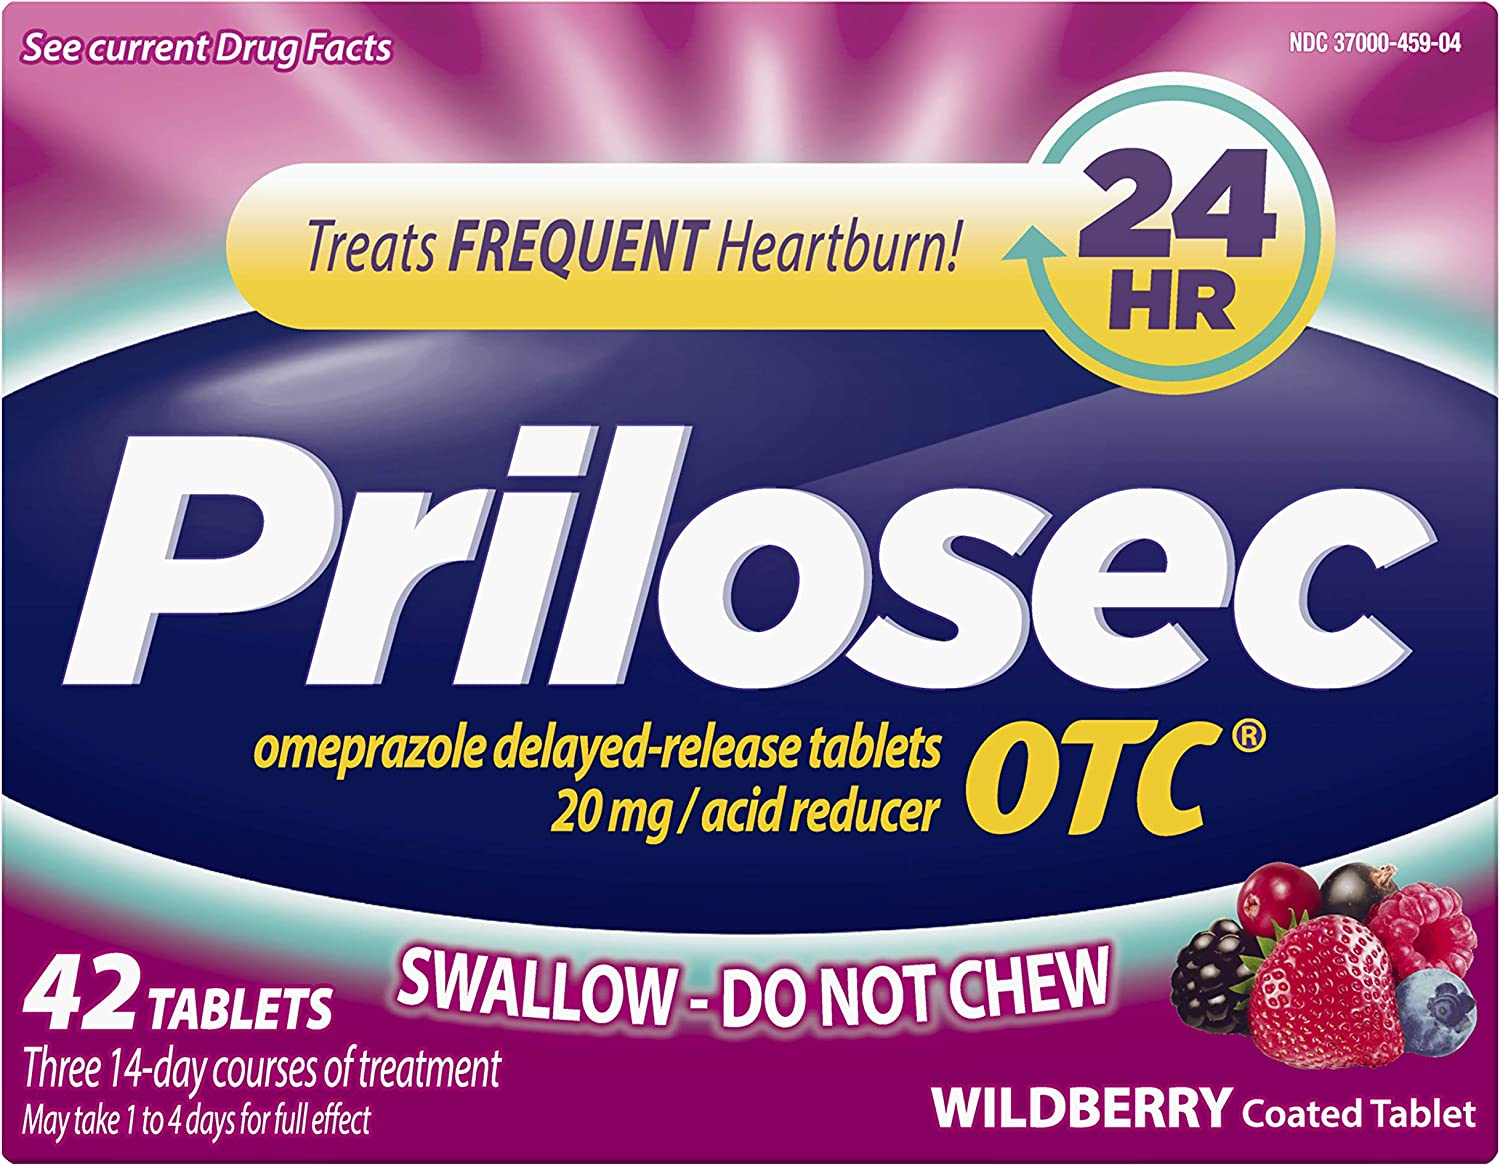 Prilosec OTC, Omeprazole Delayed Release, Acid Reducer, Treats Frequent Heartburn for 24 Hour Relief*, #1 Doctor Recommended Brand, Wildberry Flavor**, 42 Tablets